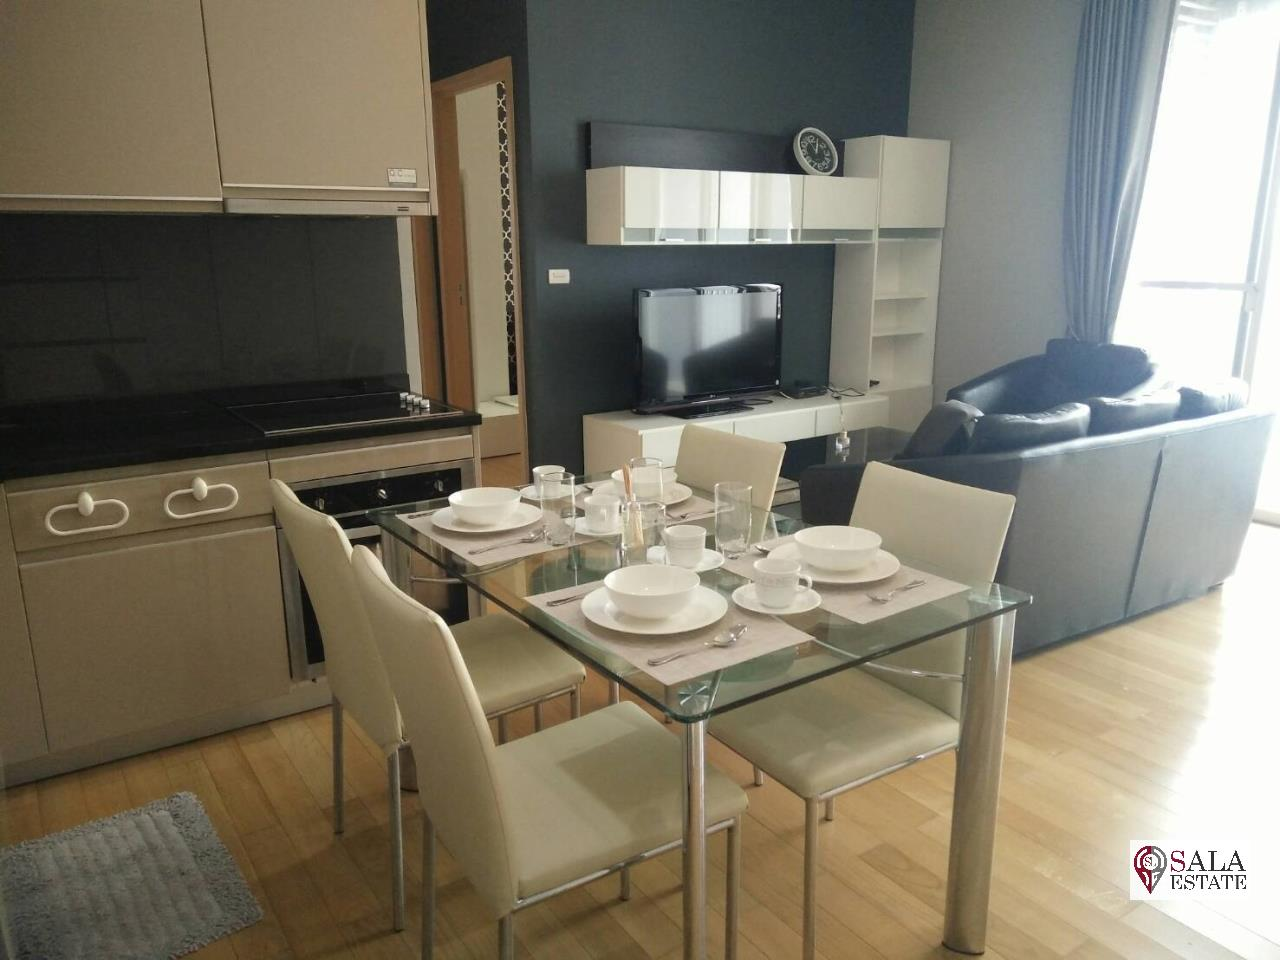 SALA ESTATE Agency's ( SELL WITH TENANT) 39 BY SANSIRI - BTS PROMPONG, 2 BEDROOMS 2 BATHROOMS, FULLY FURNISHED 5